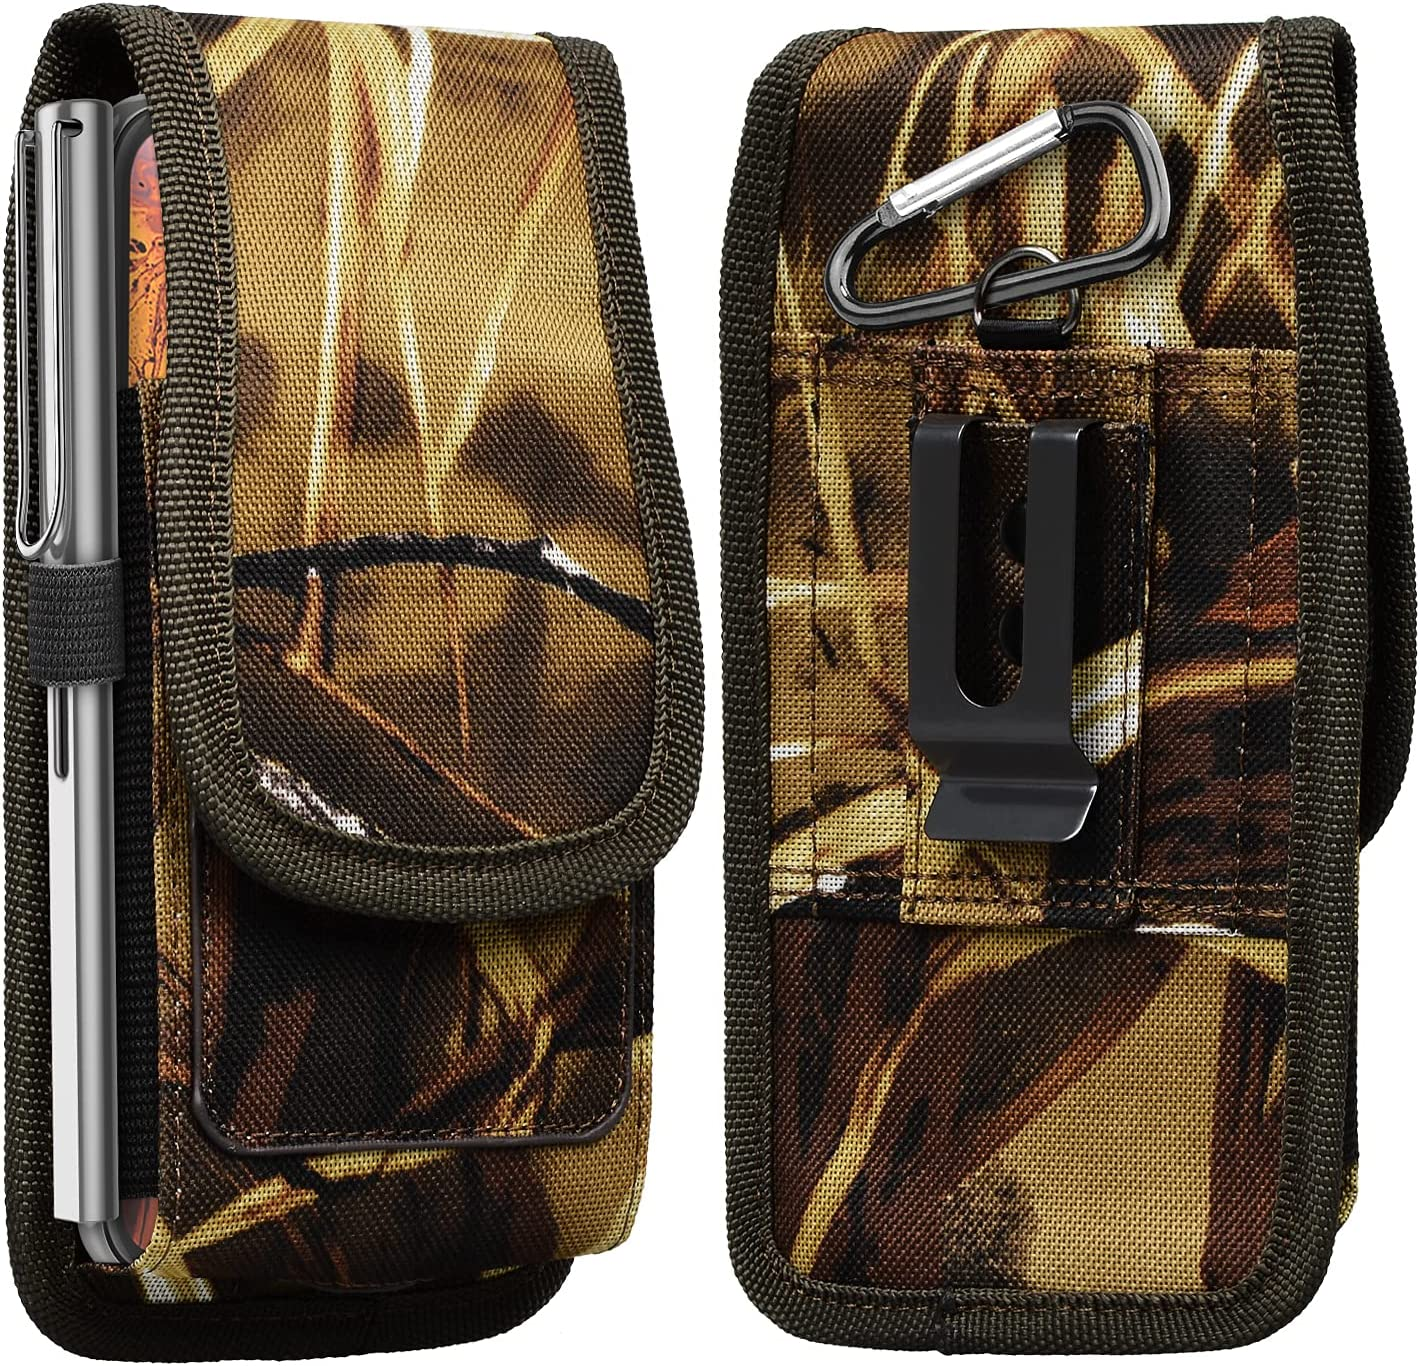 Takfox Phone Holster for Samsung Galaxy S21 Ultra S20 Plus S10+ S9 S8 J7 J3 Note 20 10 A02s A12 A01 A11 A21 A51 A71 A10e A20 A30 Nylon Cell Phone Belt Clip Holster Carrying Pouch w Card Holder,Camo